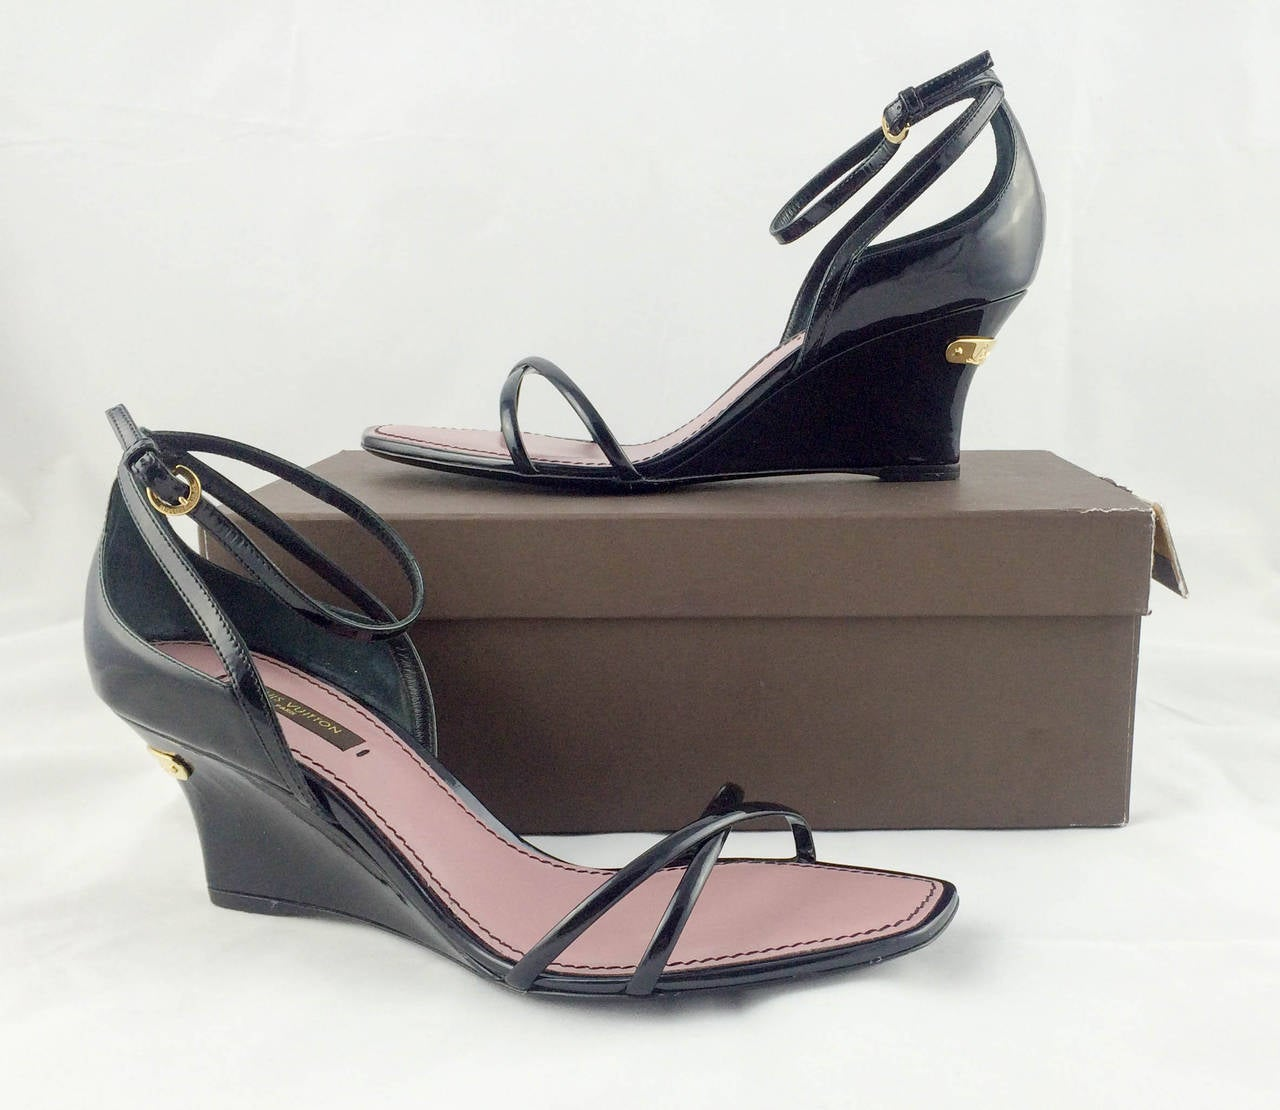 Louis Vuitton Strawberry Wedges Sandals - 2009 For Sale 4